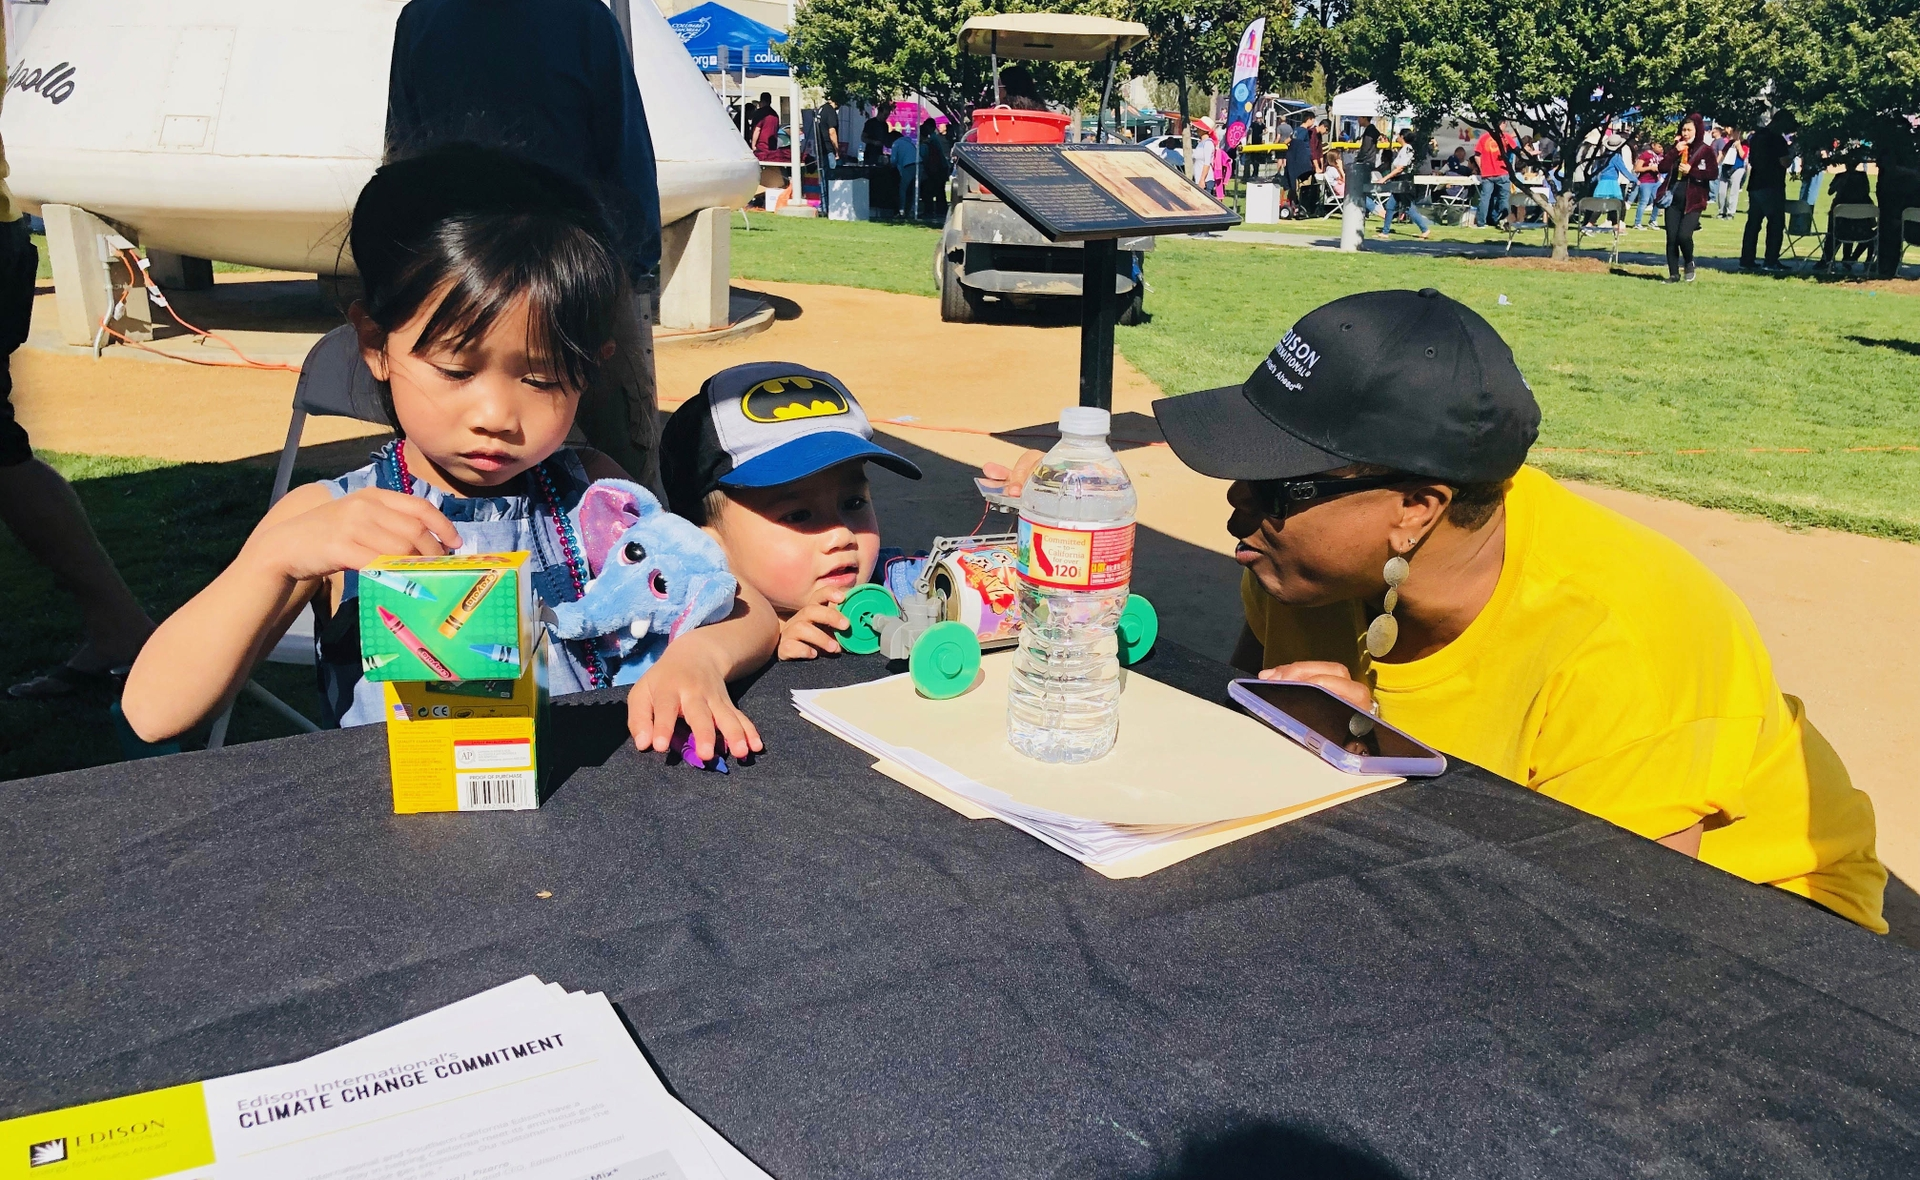 An Edison International volunteer does STEM activities with some of the festival attendees.